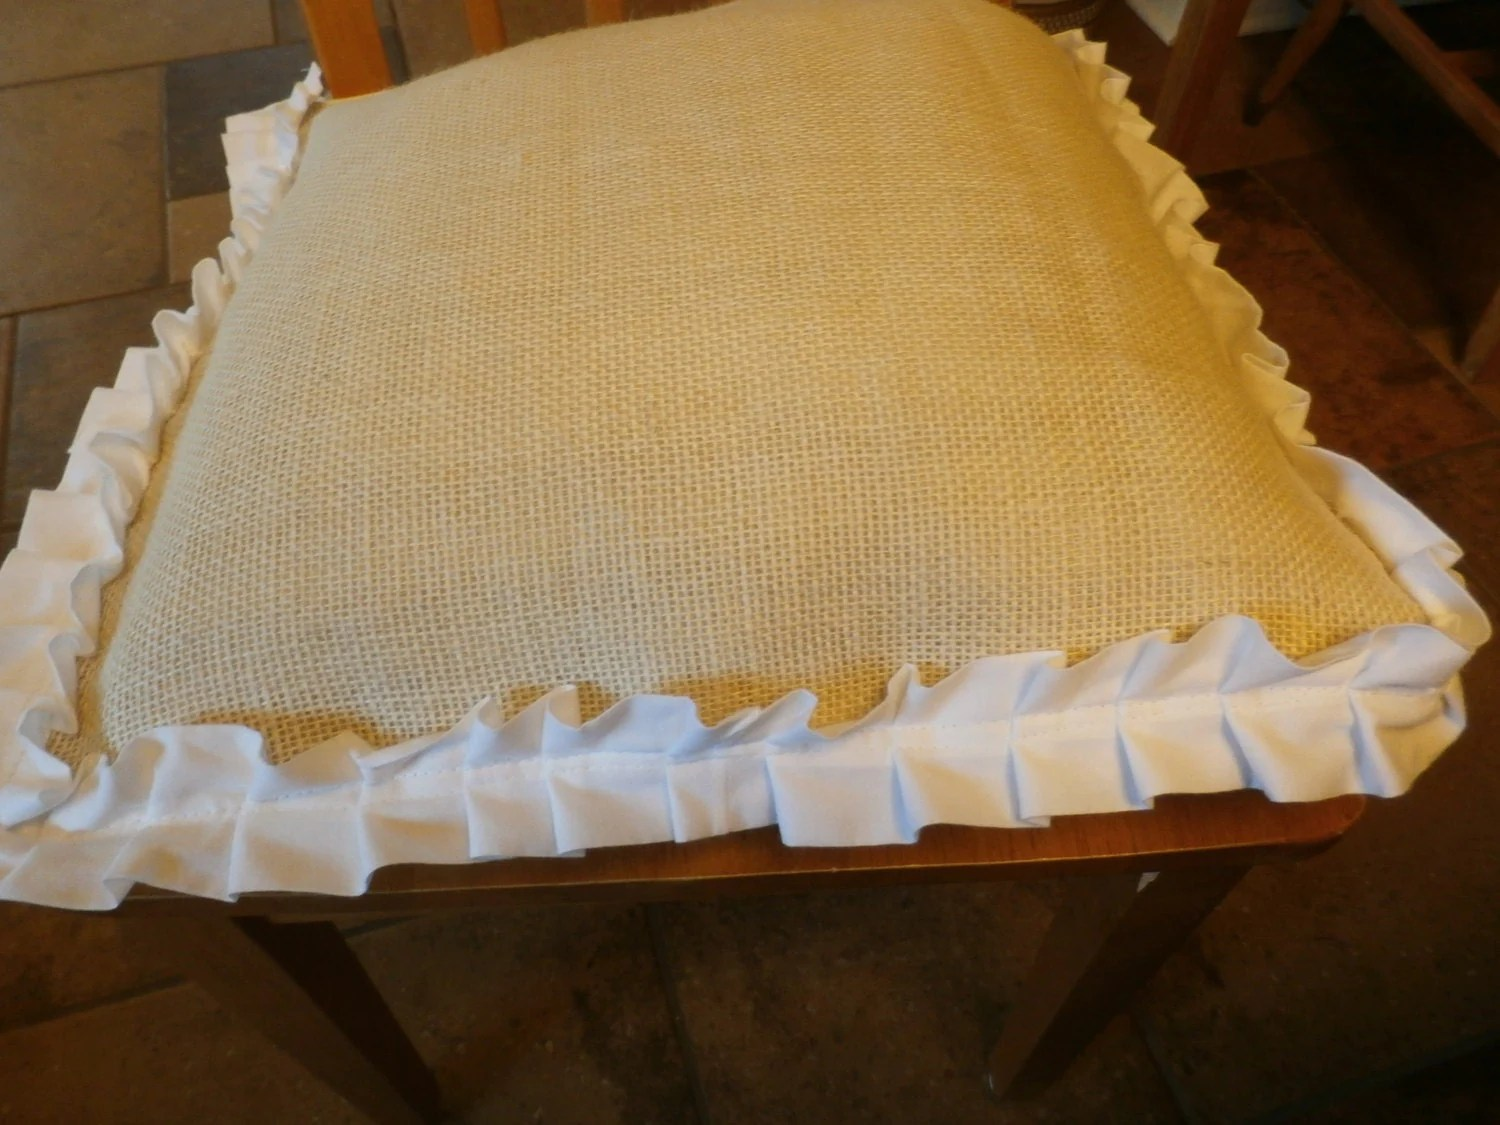 burlap chair covers ideas cheap kitchen table and chairs seat oatmeal cover white ruffled edge with